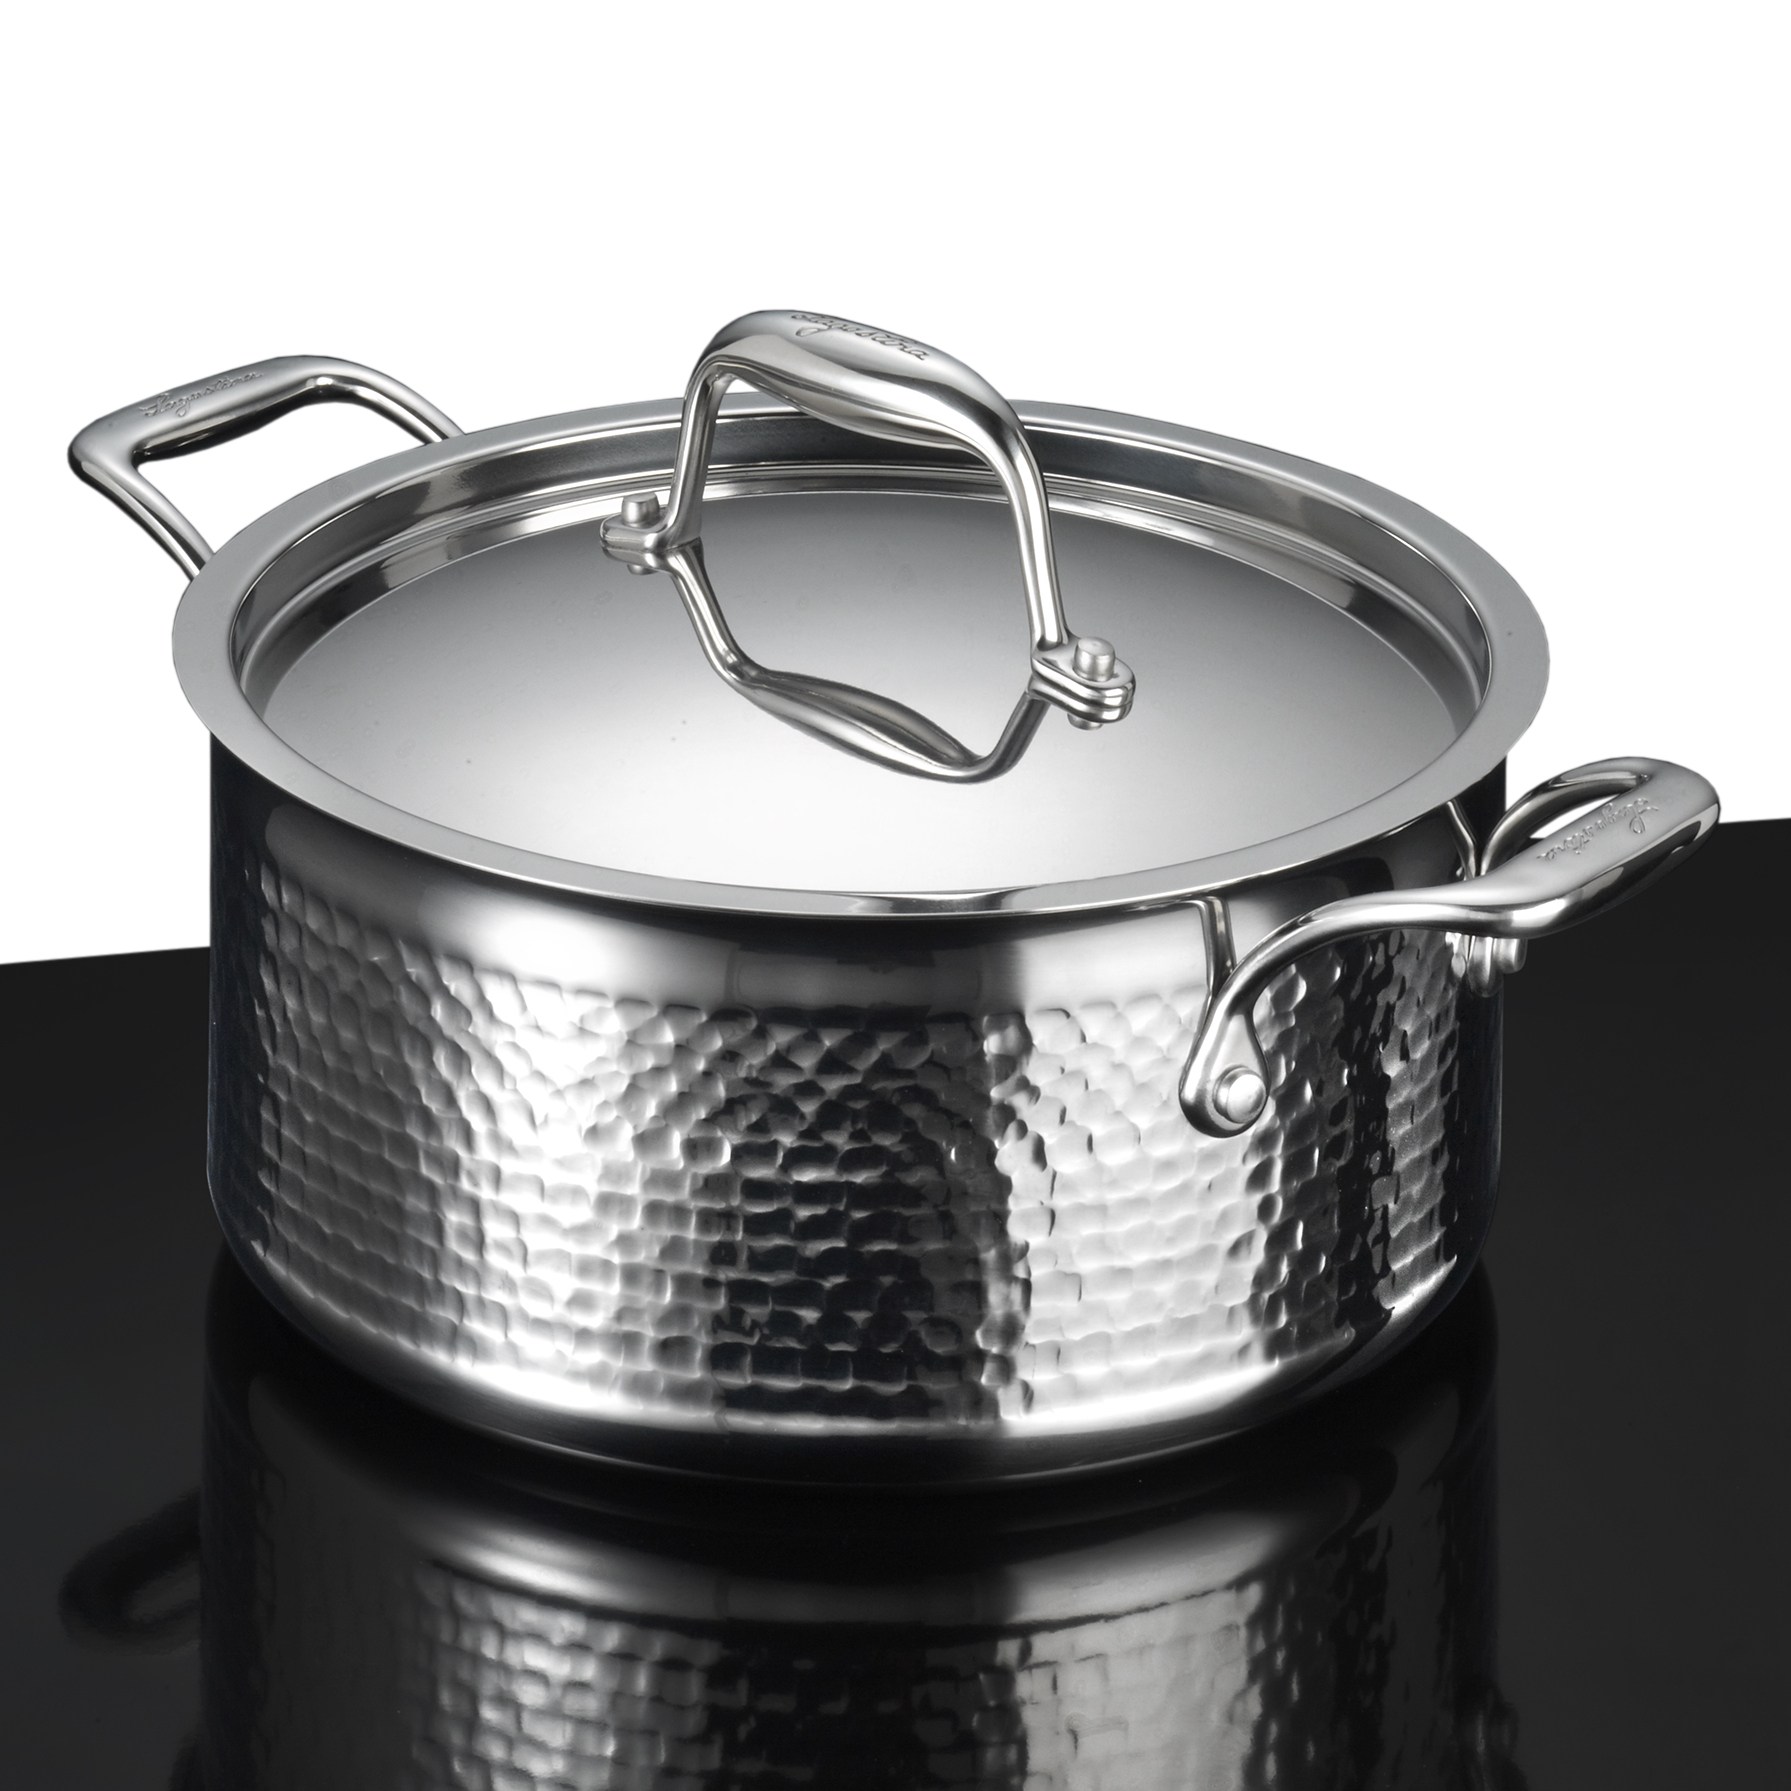 Lagostina Martellata Tri-Ply Hammered Stainless Steel 5 Quart Covered Stewpot